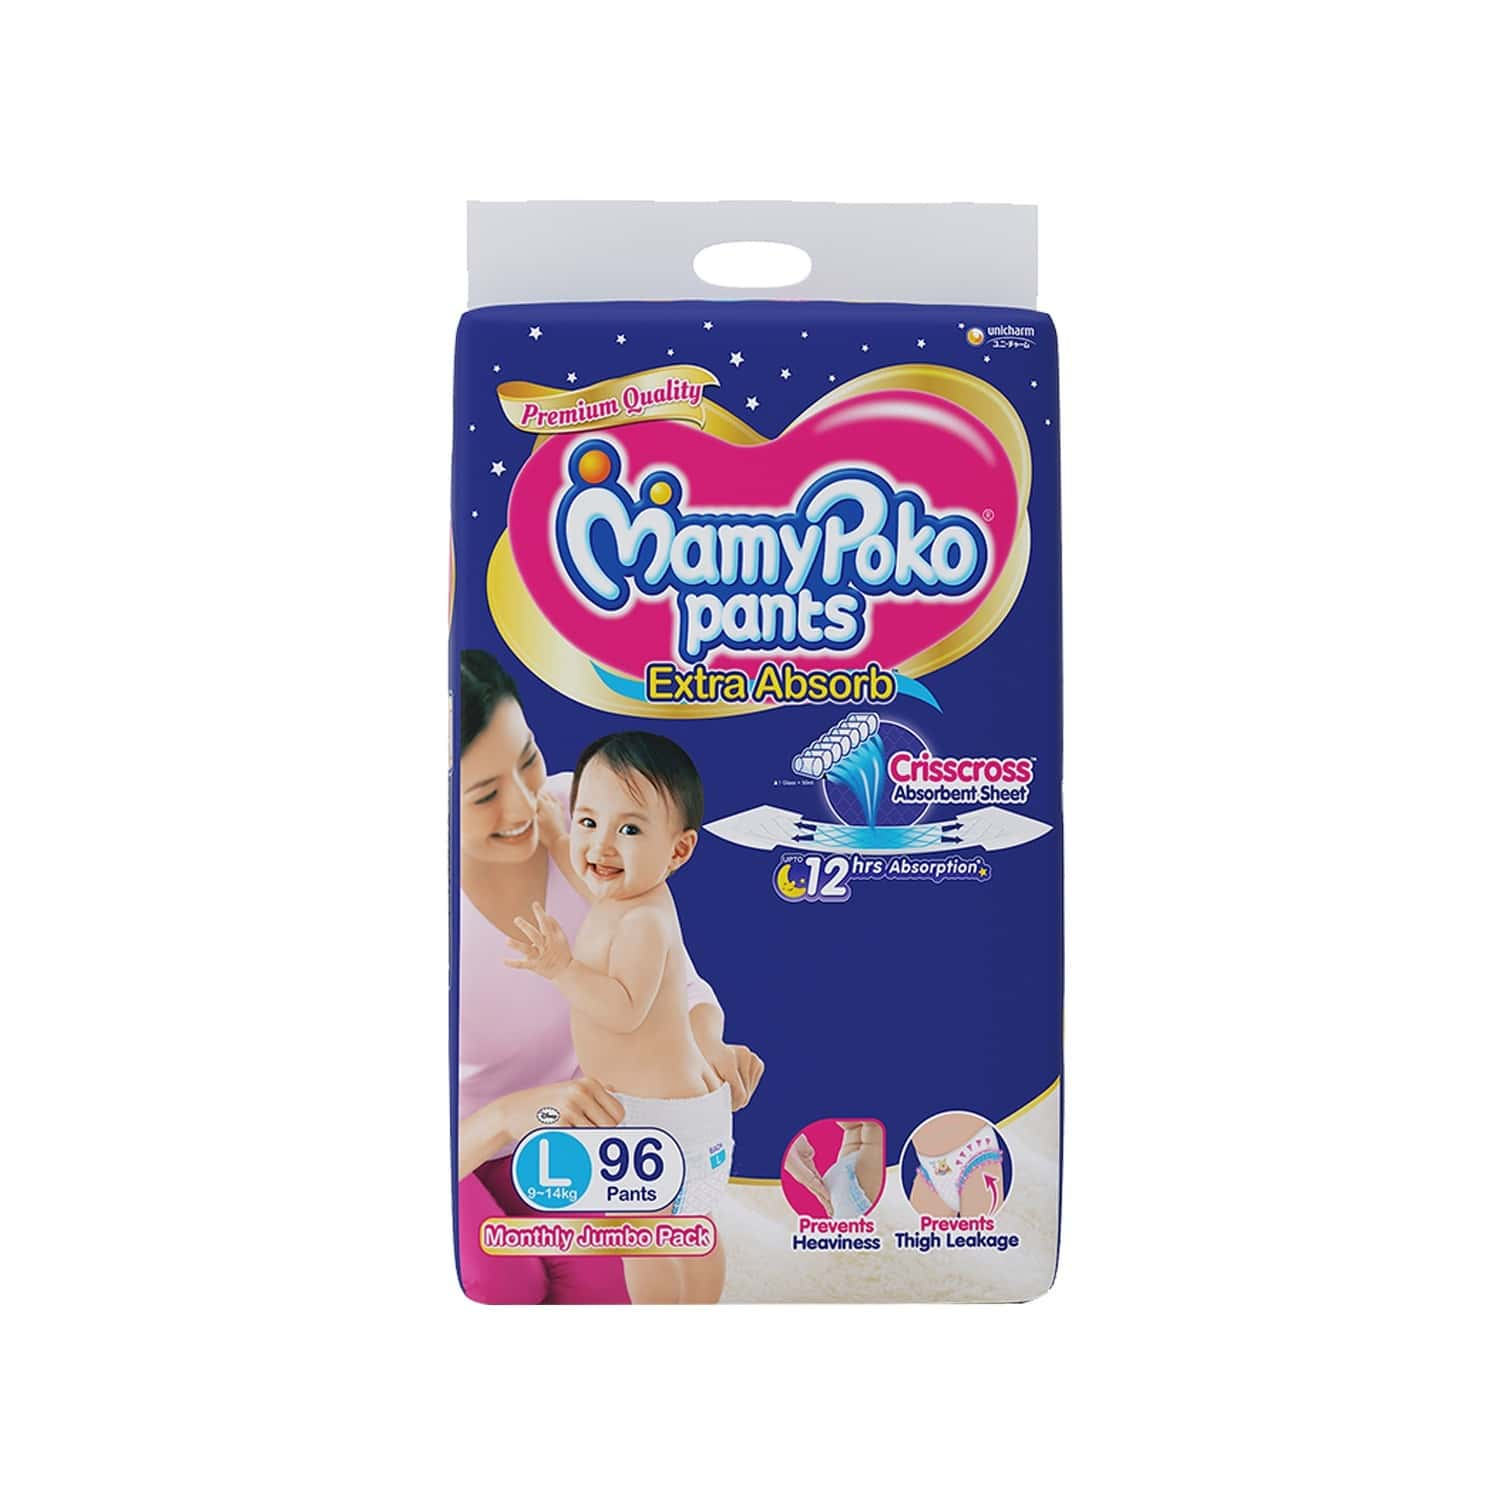 Mamypoko Pants Extra Absorb Diaper - Monthly Jumbo Pack-large Size, Pack Of 96 Diapers (l-96)